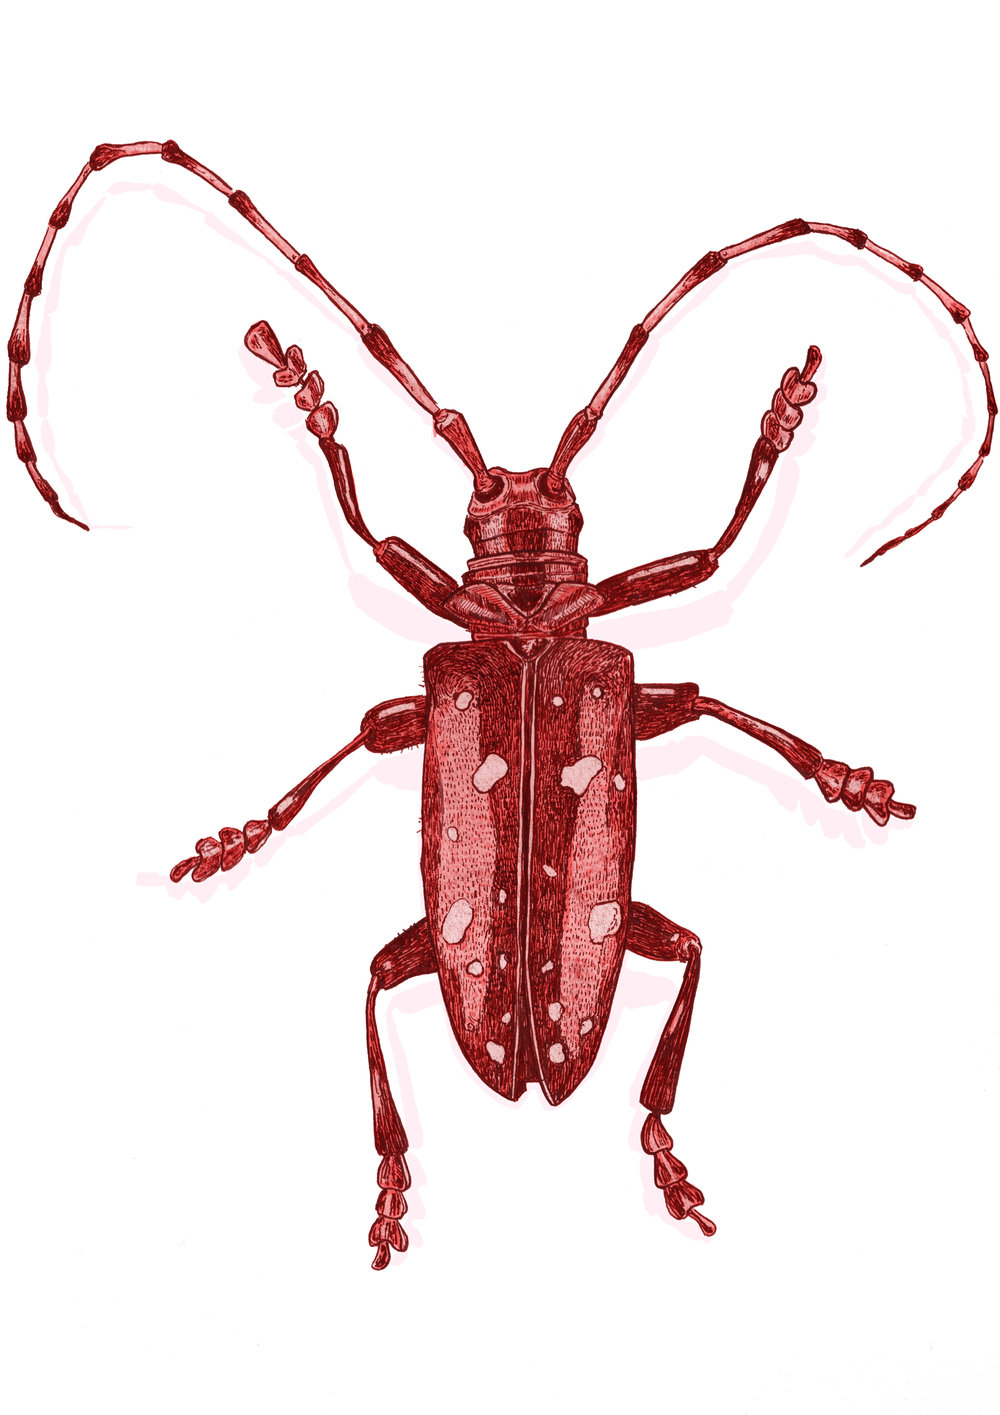 red beetle.jpg